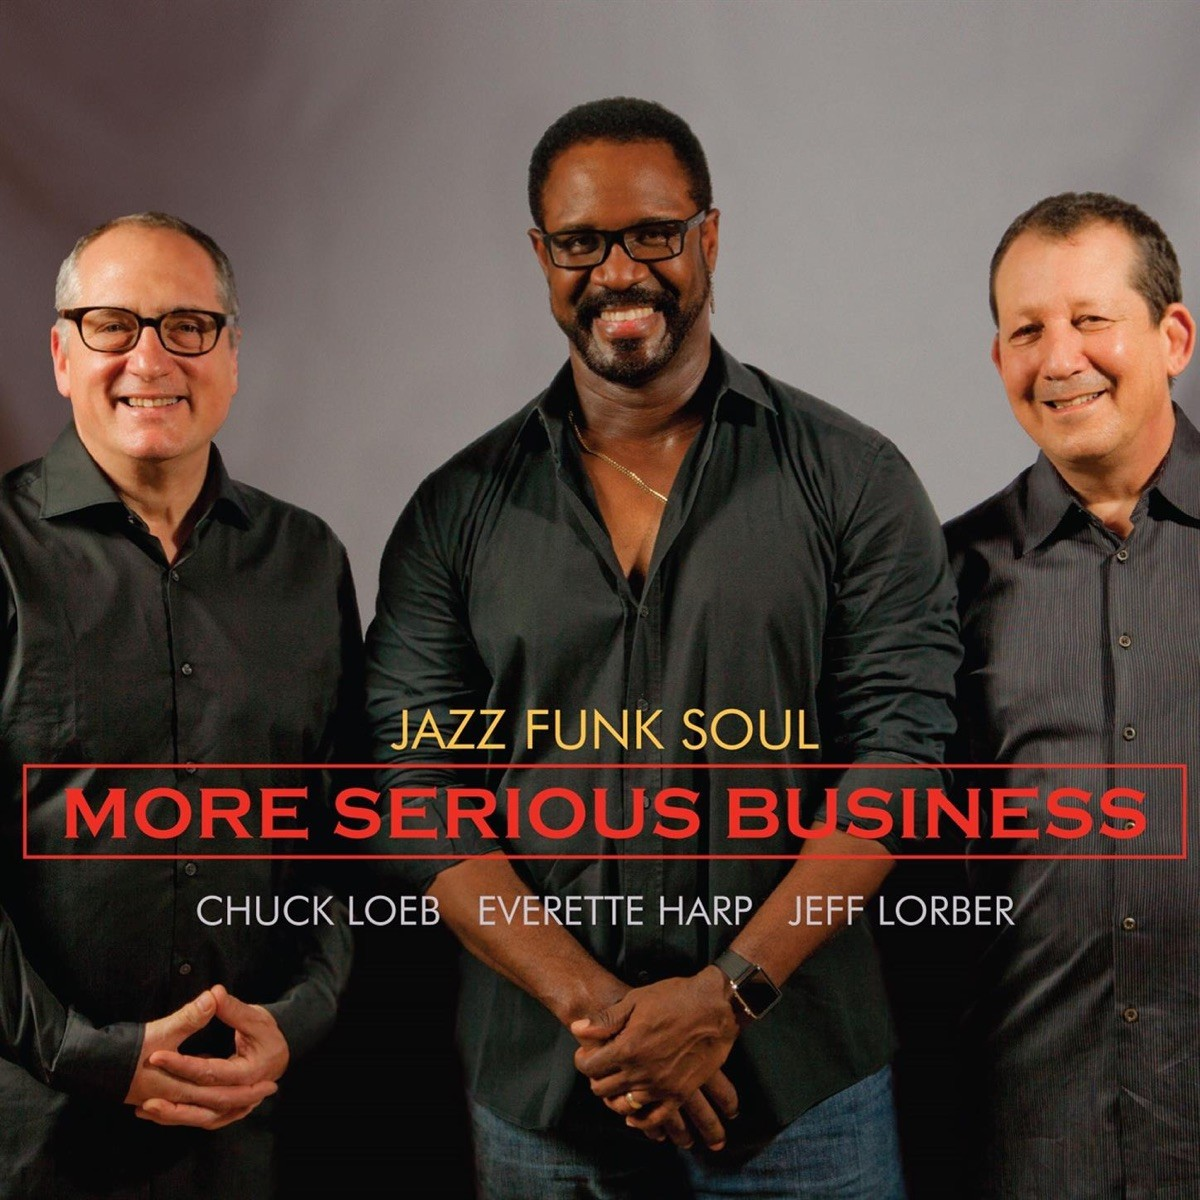 Jazz Funk Soul - More Serious Business CD - SCANACHIE 5438